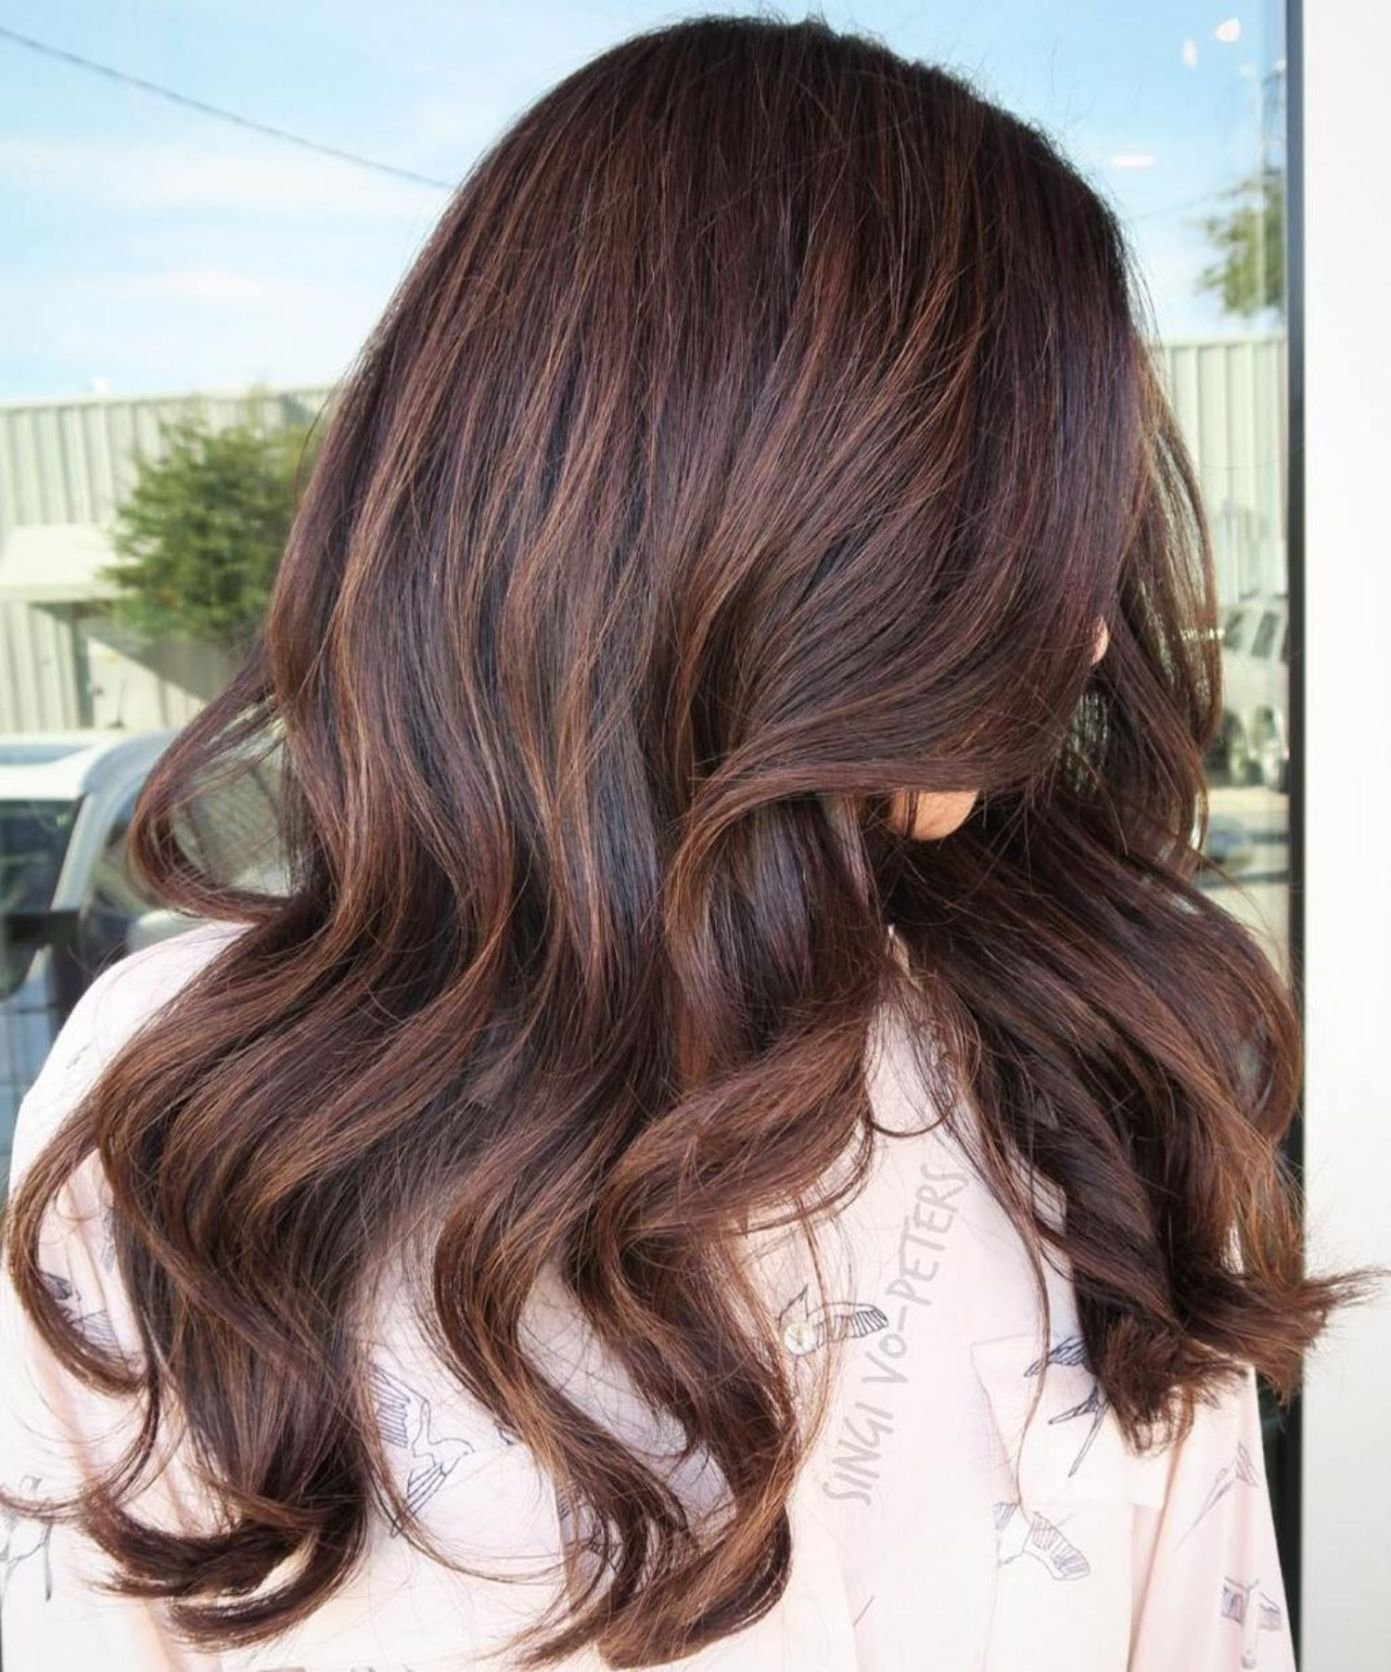 60 Chocolate Brown Hair Color Ideas For Brunettes Highlights For Dark Brown Hair Brunette Hair Color Brown Hair With Highlights